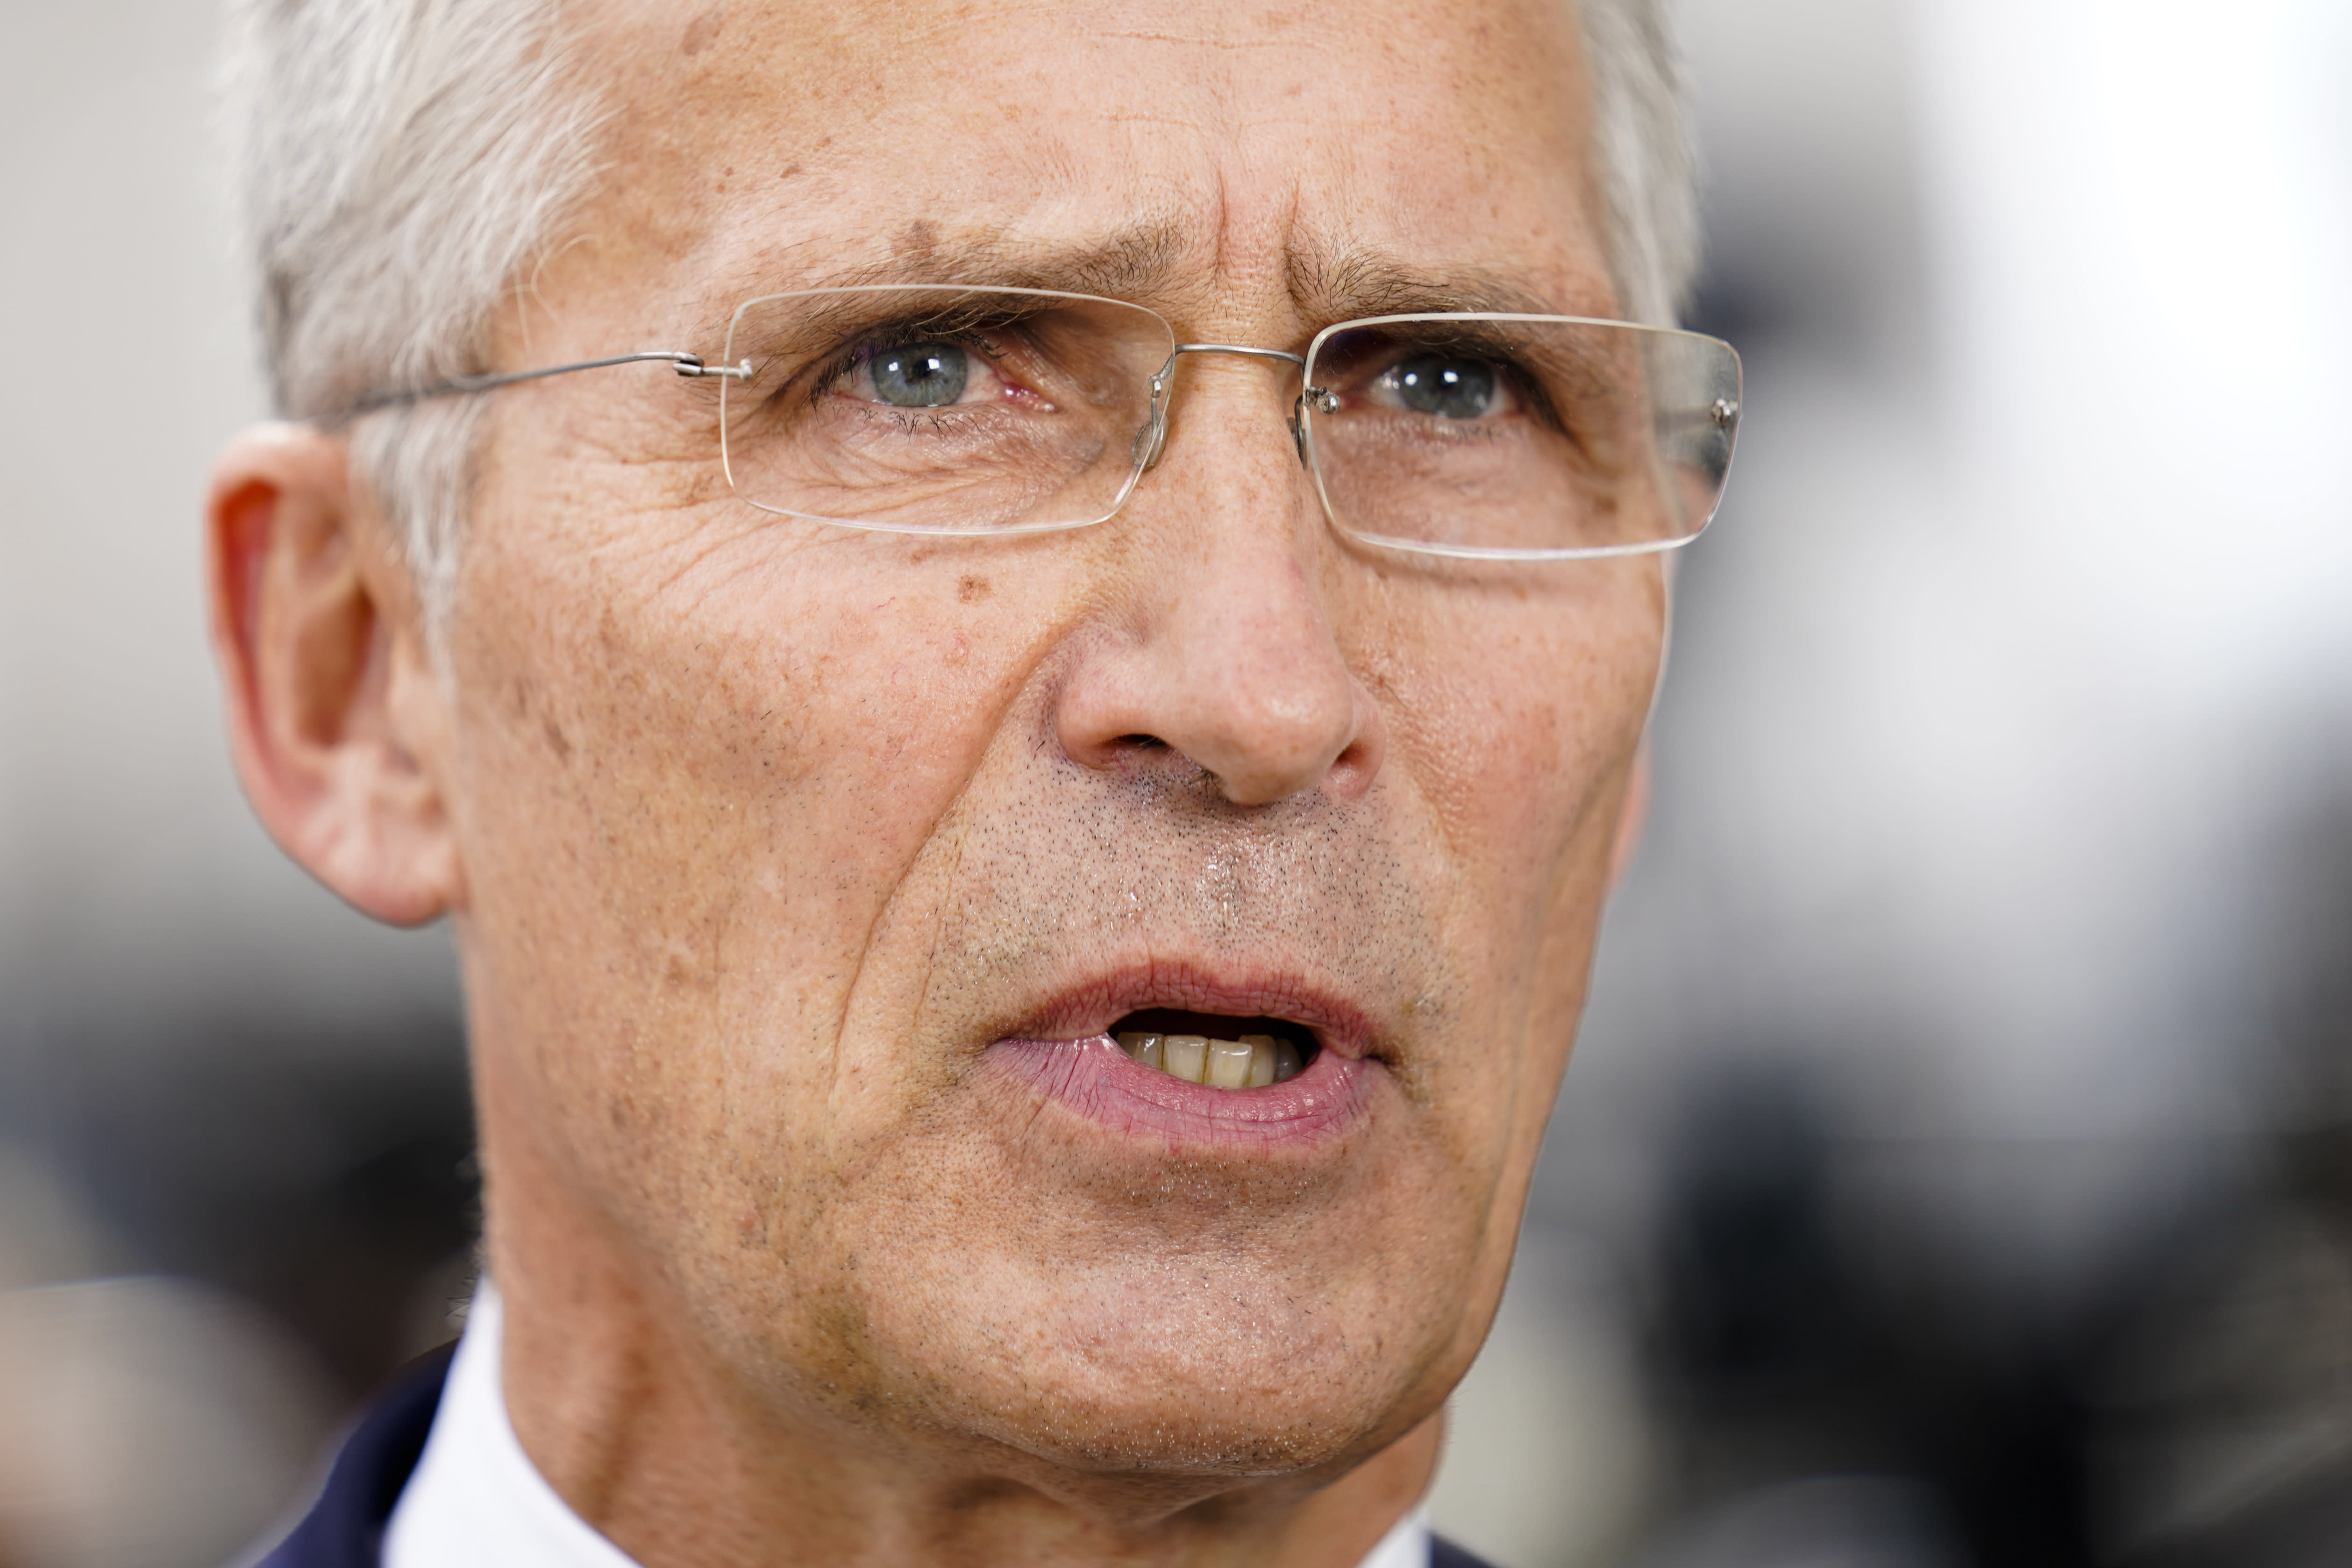 NATO leader: Allies need to stand together amid sub flap